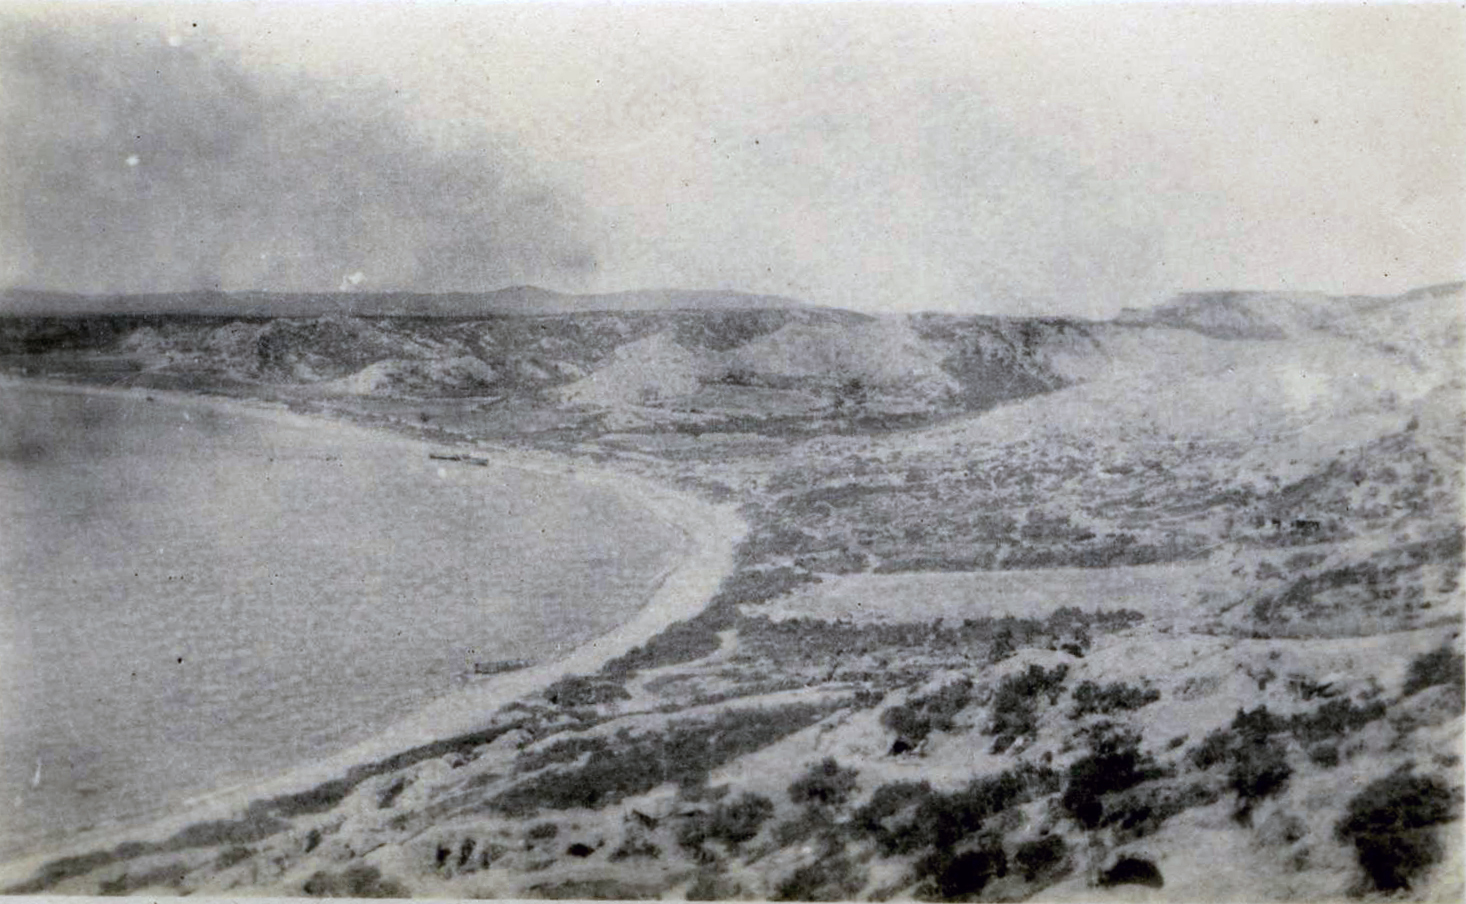 ANZAC Cove, from Gallipoli Diary website